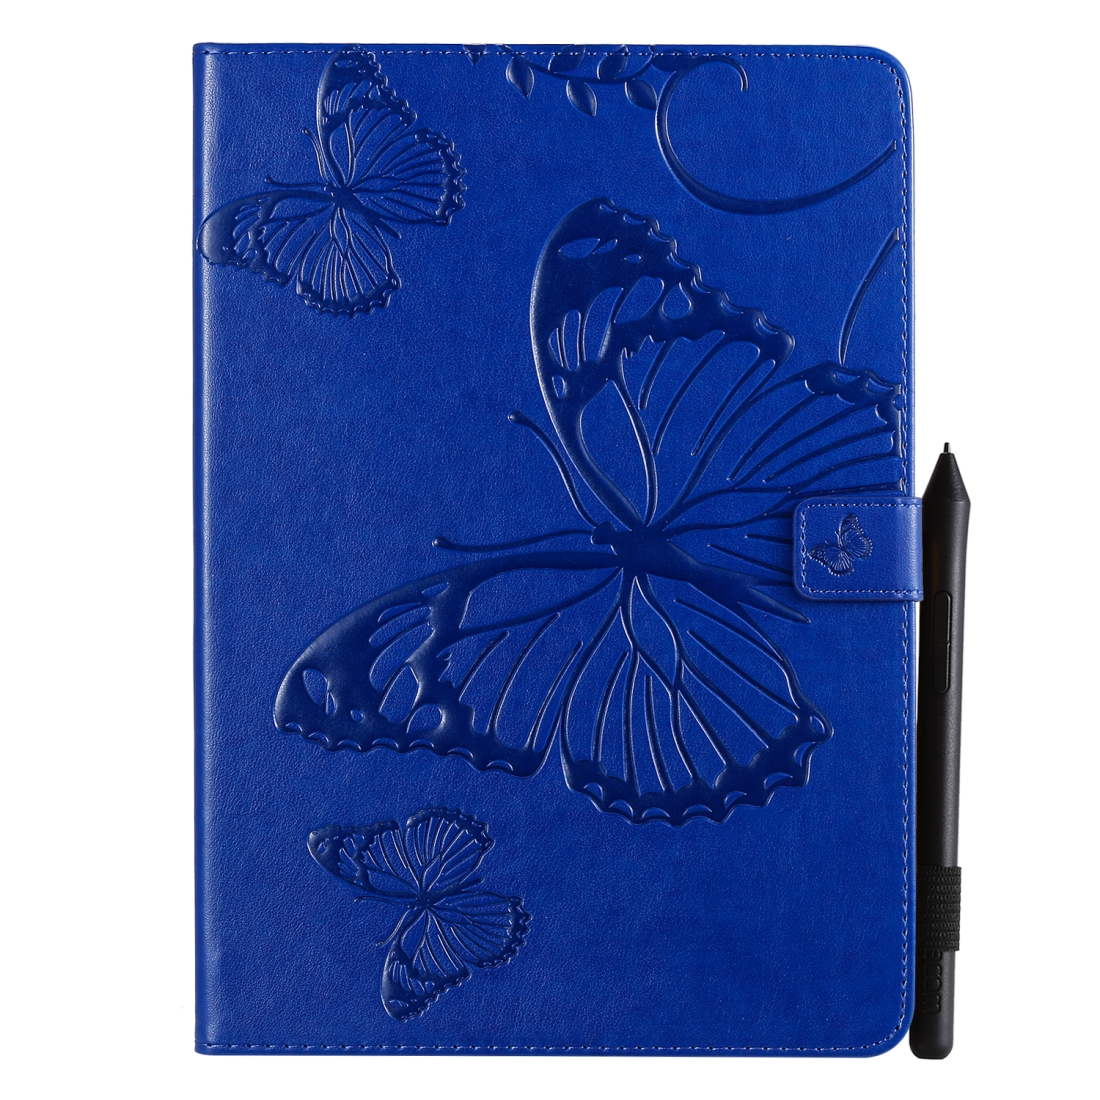 iPad 7th Generation Case (10.2 Inch) Also Fits /Pro 10.5/Air 2019 Leather Butterfly Design (Blue)